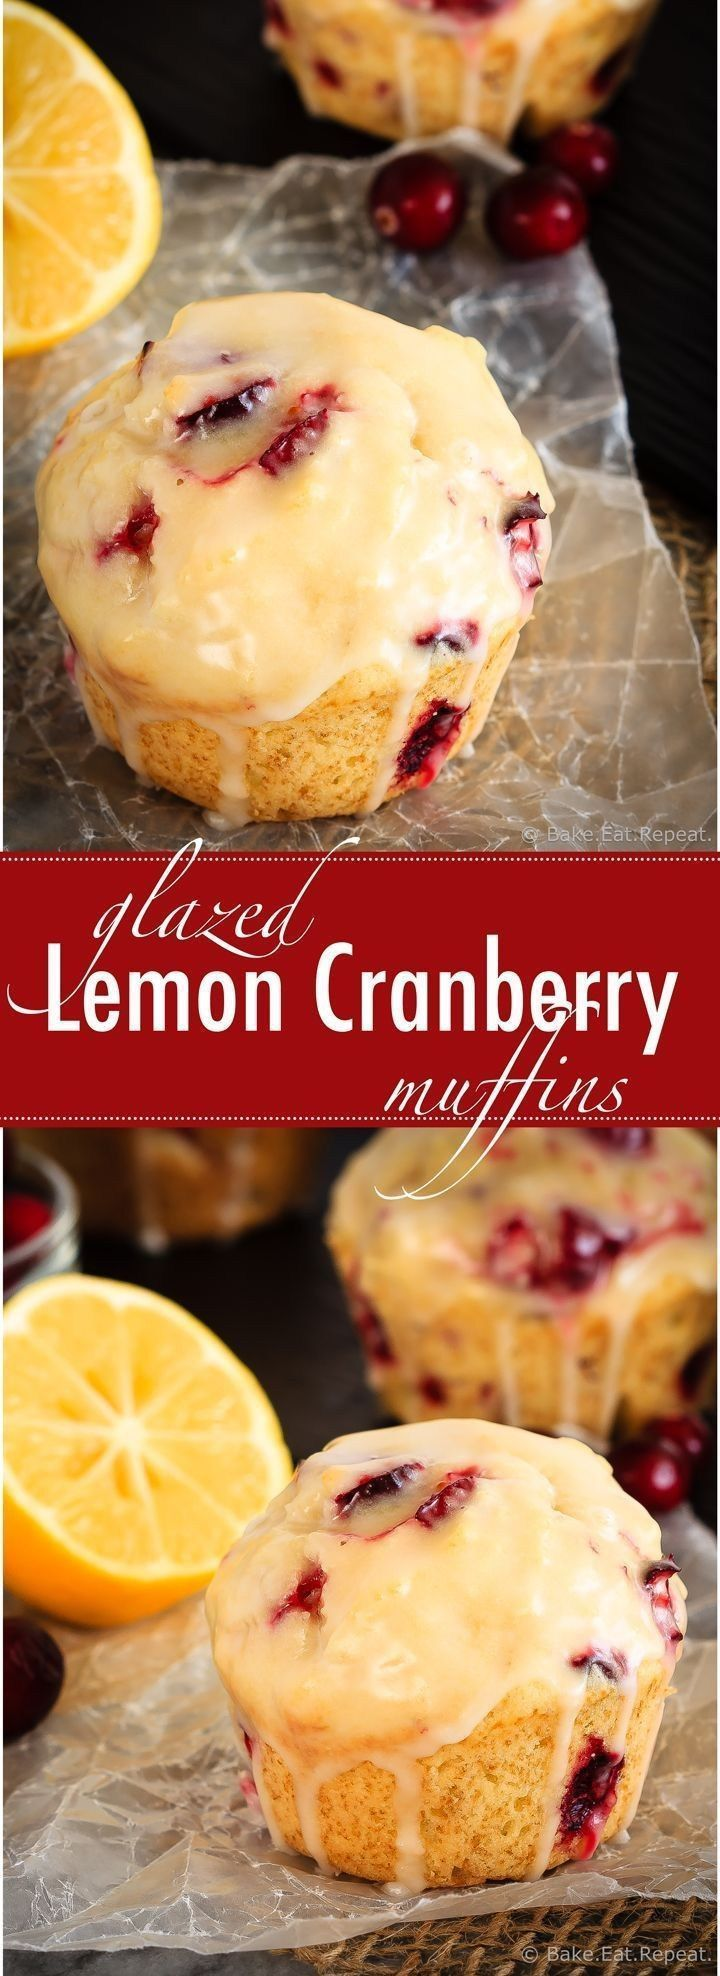 66 Deliciously Decadent Muffin Recipes That Will Knock Your Socks Off